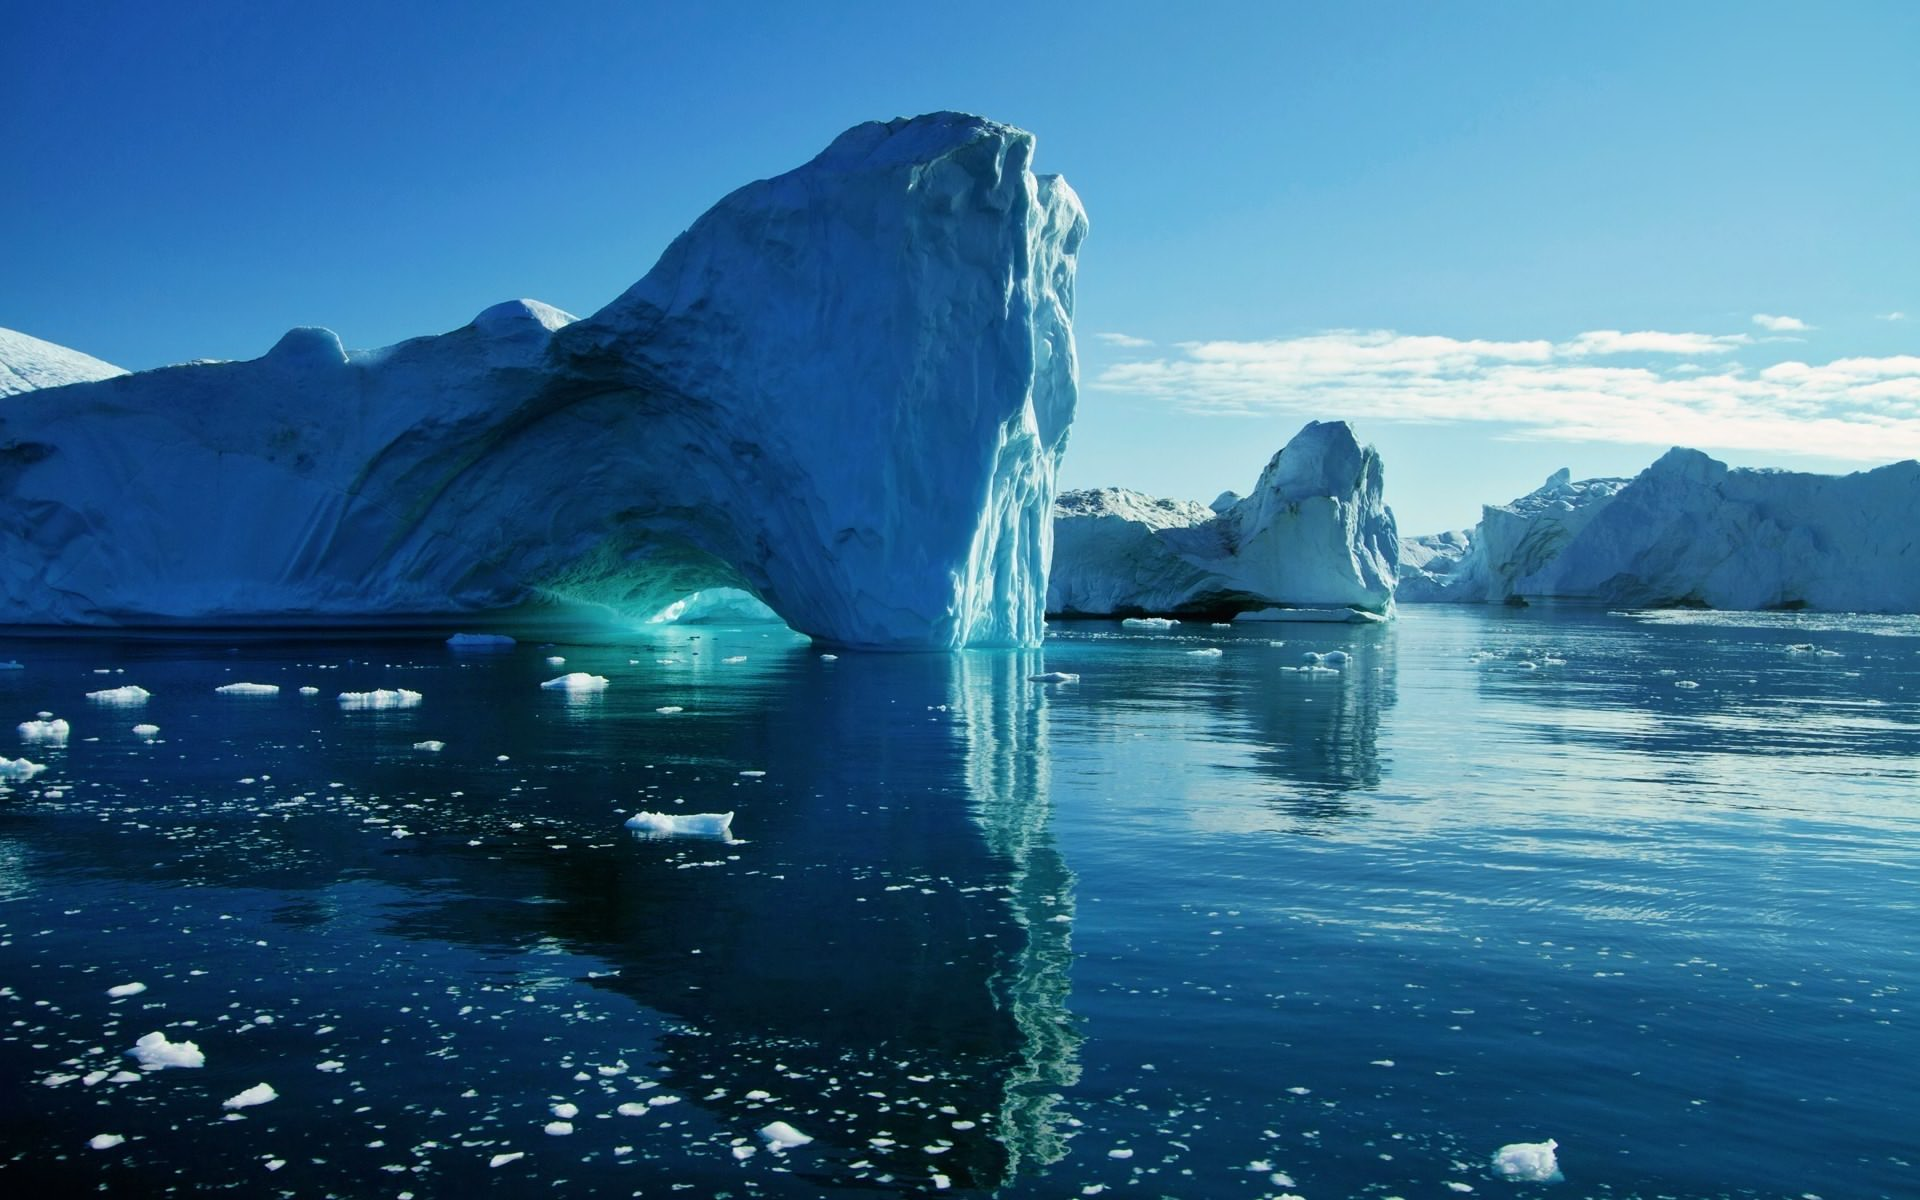 According to data collected by NASA, Antarctica has been losing more than a hundred cubic kilometers (24 cubic miles) of ice each year since 2002 and if all this ice is melts, it would raise the global sea level by about 60 meters or 197 feet. The disintegration of ice shelf, which is another cause of melting of glaciers, was caught by NASA satellites in 2010 and showed how it took just three weeks to crumble a 12,000-year old ice shelf.